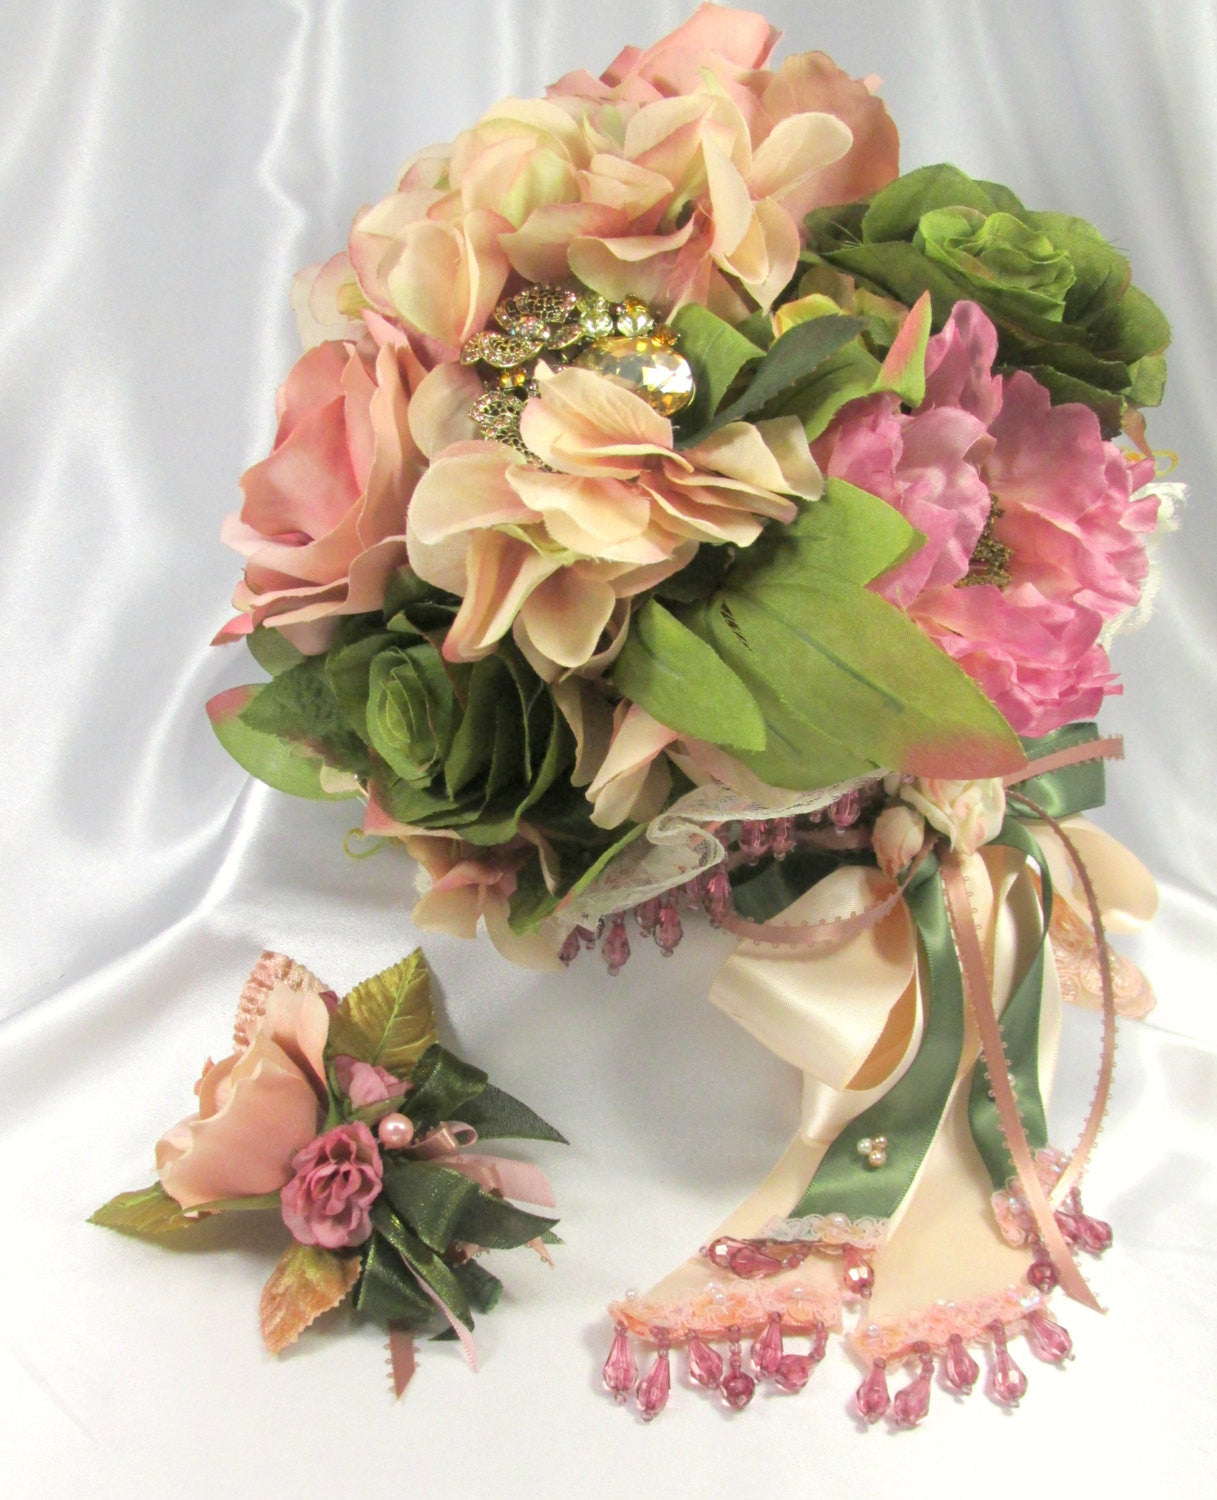 Cottage Rose Beaded Cascading Bridal Brooch Bouquet in Mauve, Pink Blush, Peach and Olive Green - Odyssey Creations